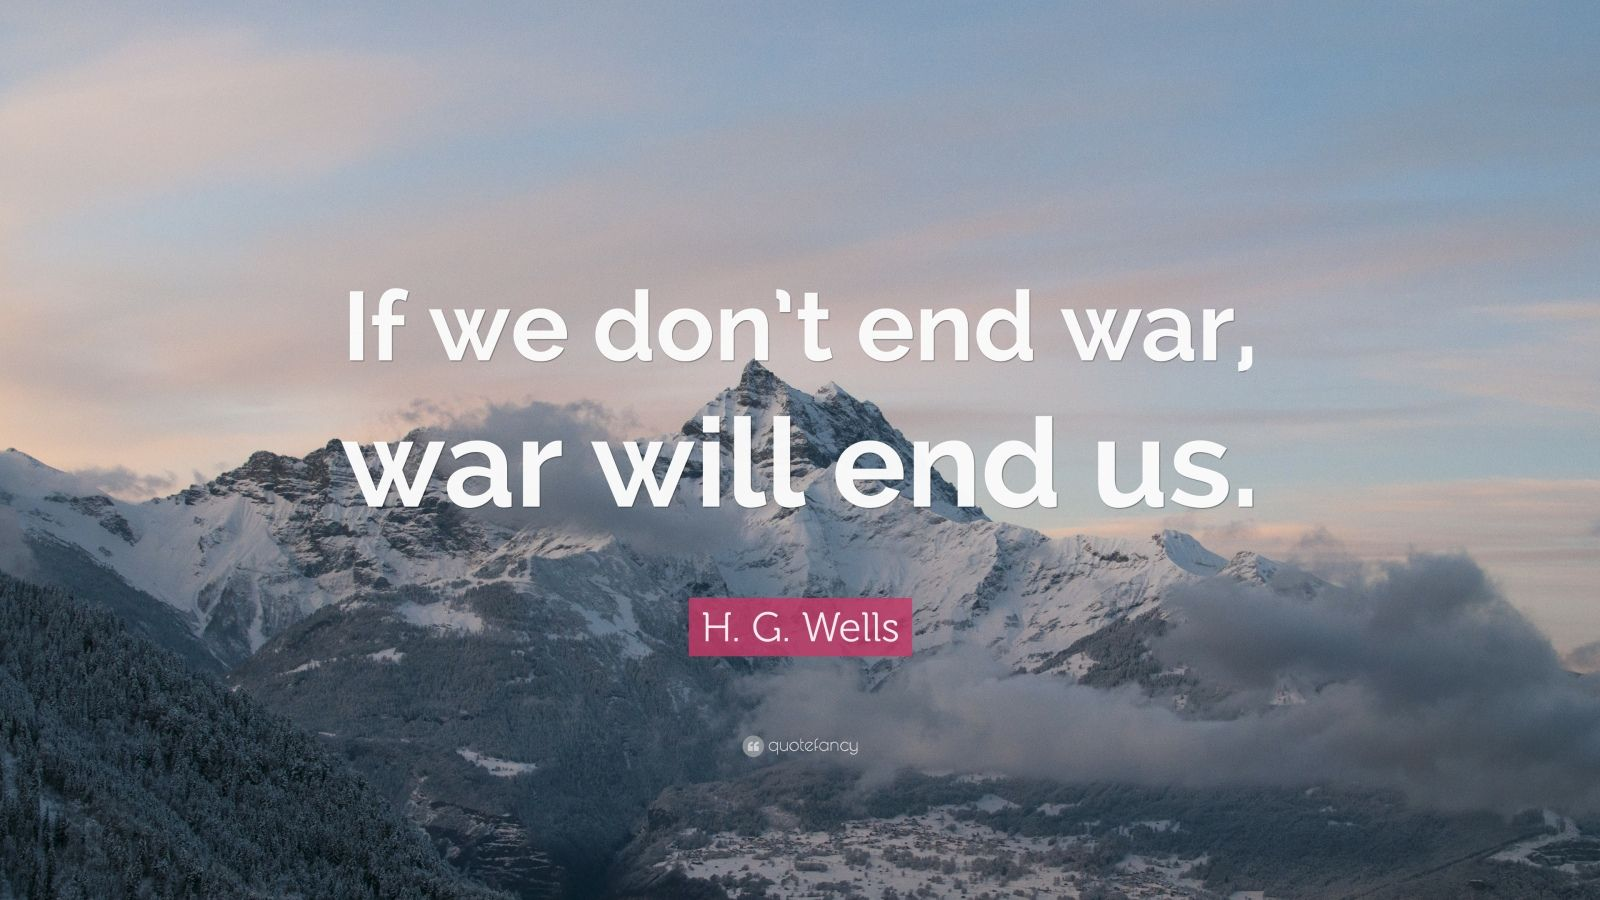 """H. G. Wells Quote: """"If we don't end war, war will end us."""""""